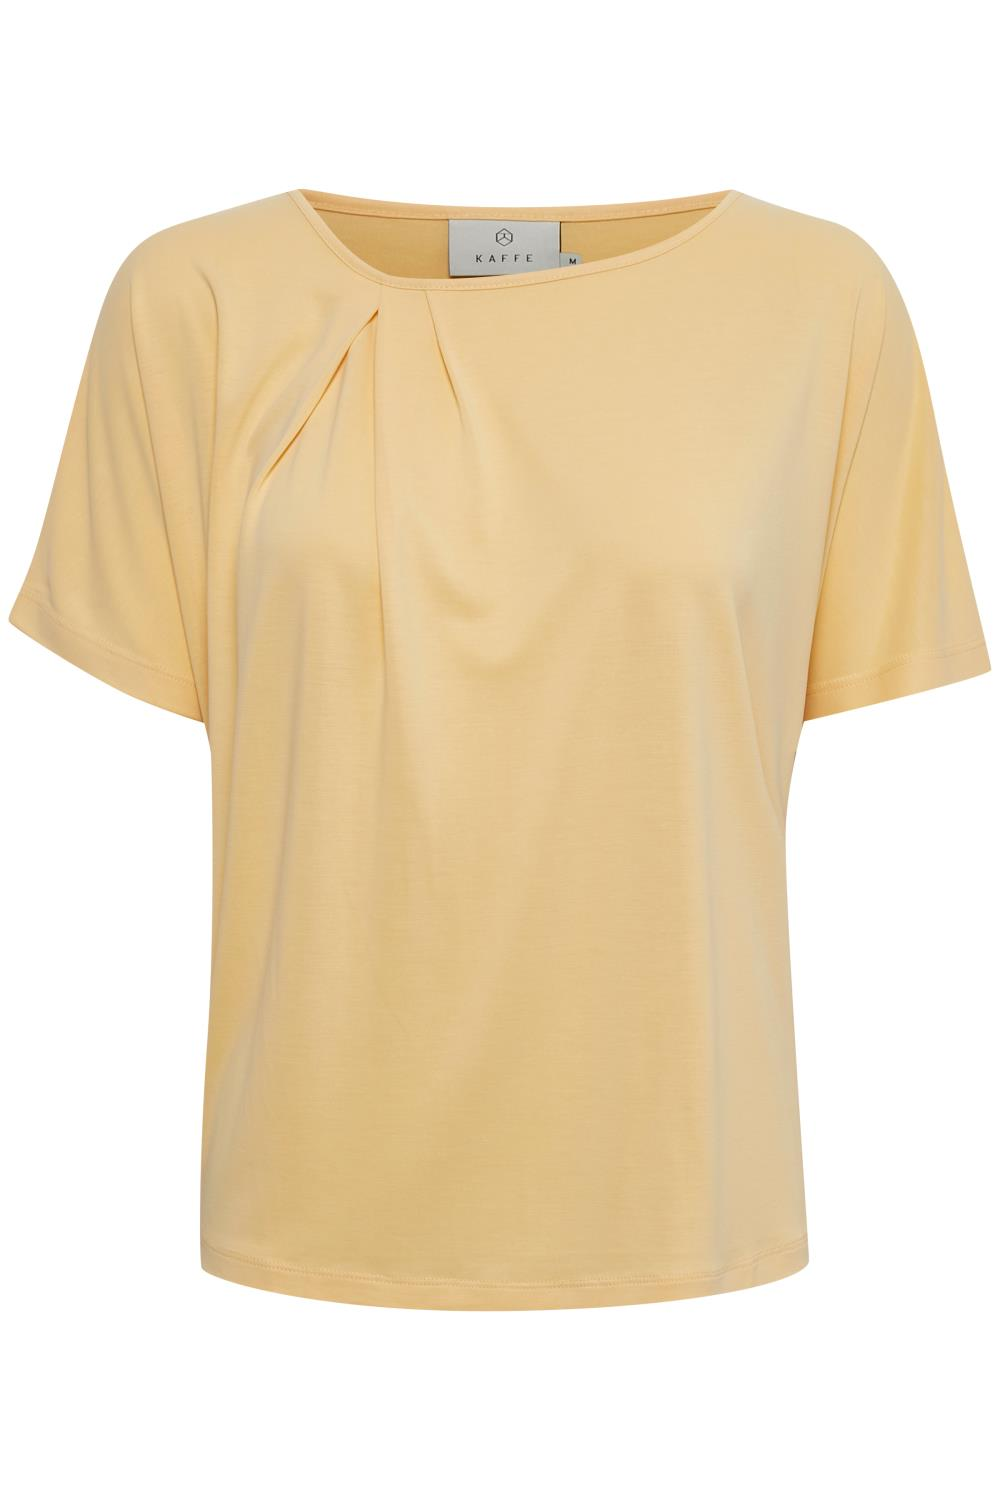 Kaffe Liffa T-shirt, golden haze